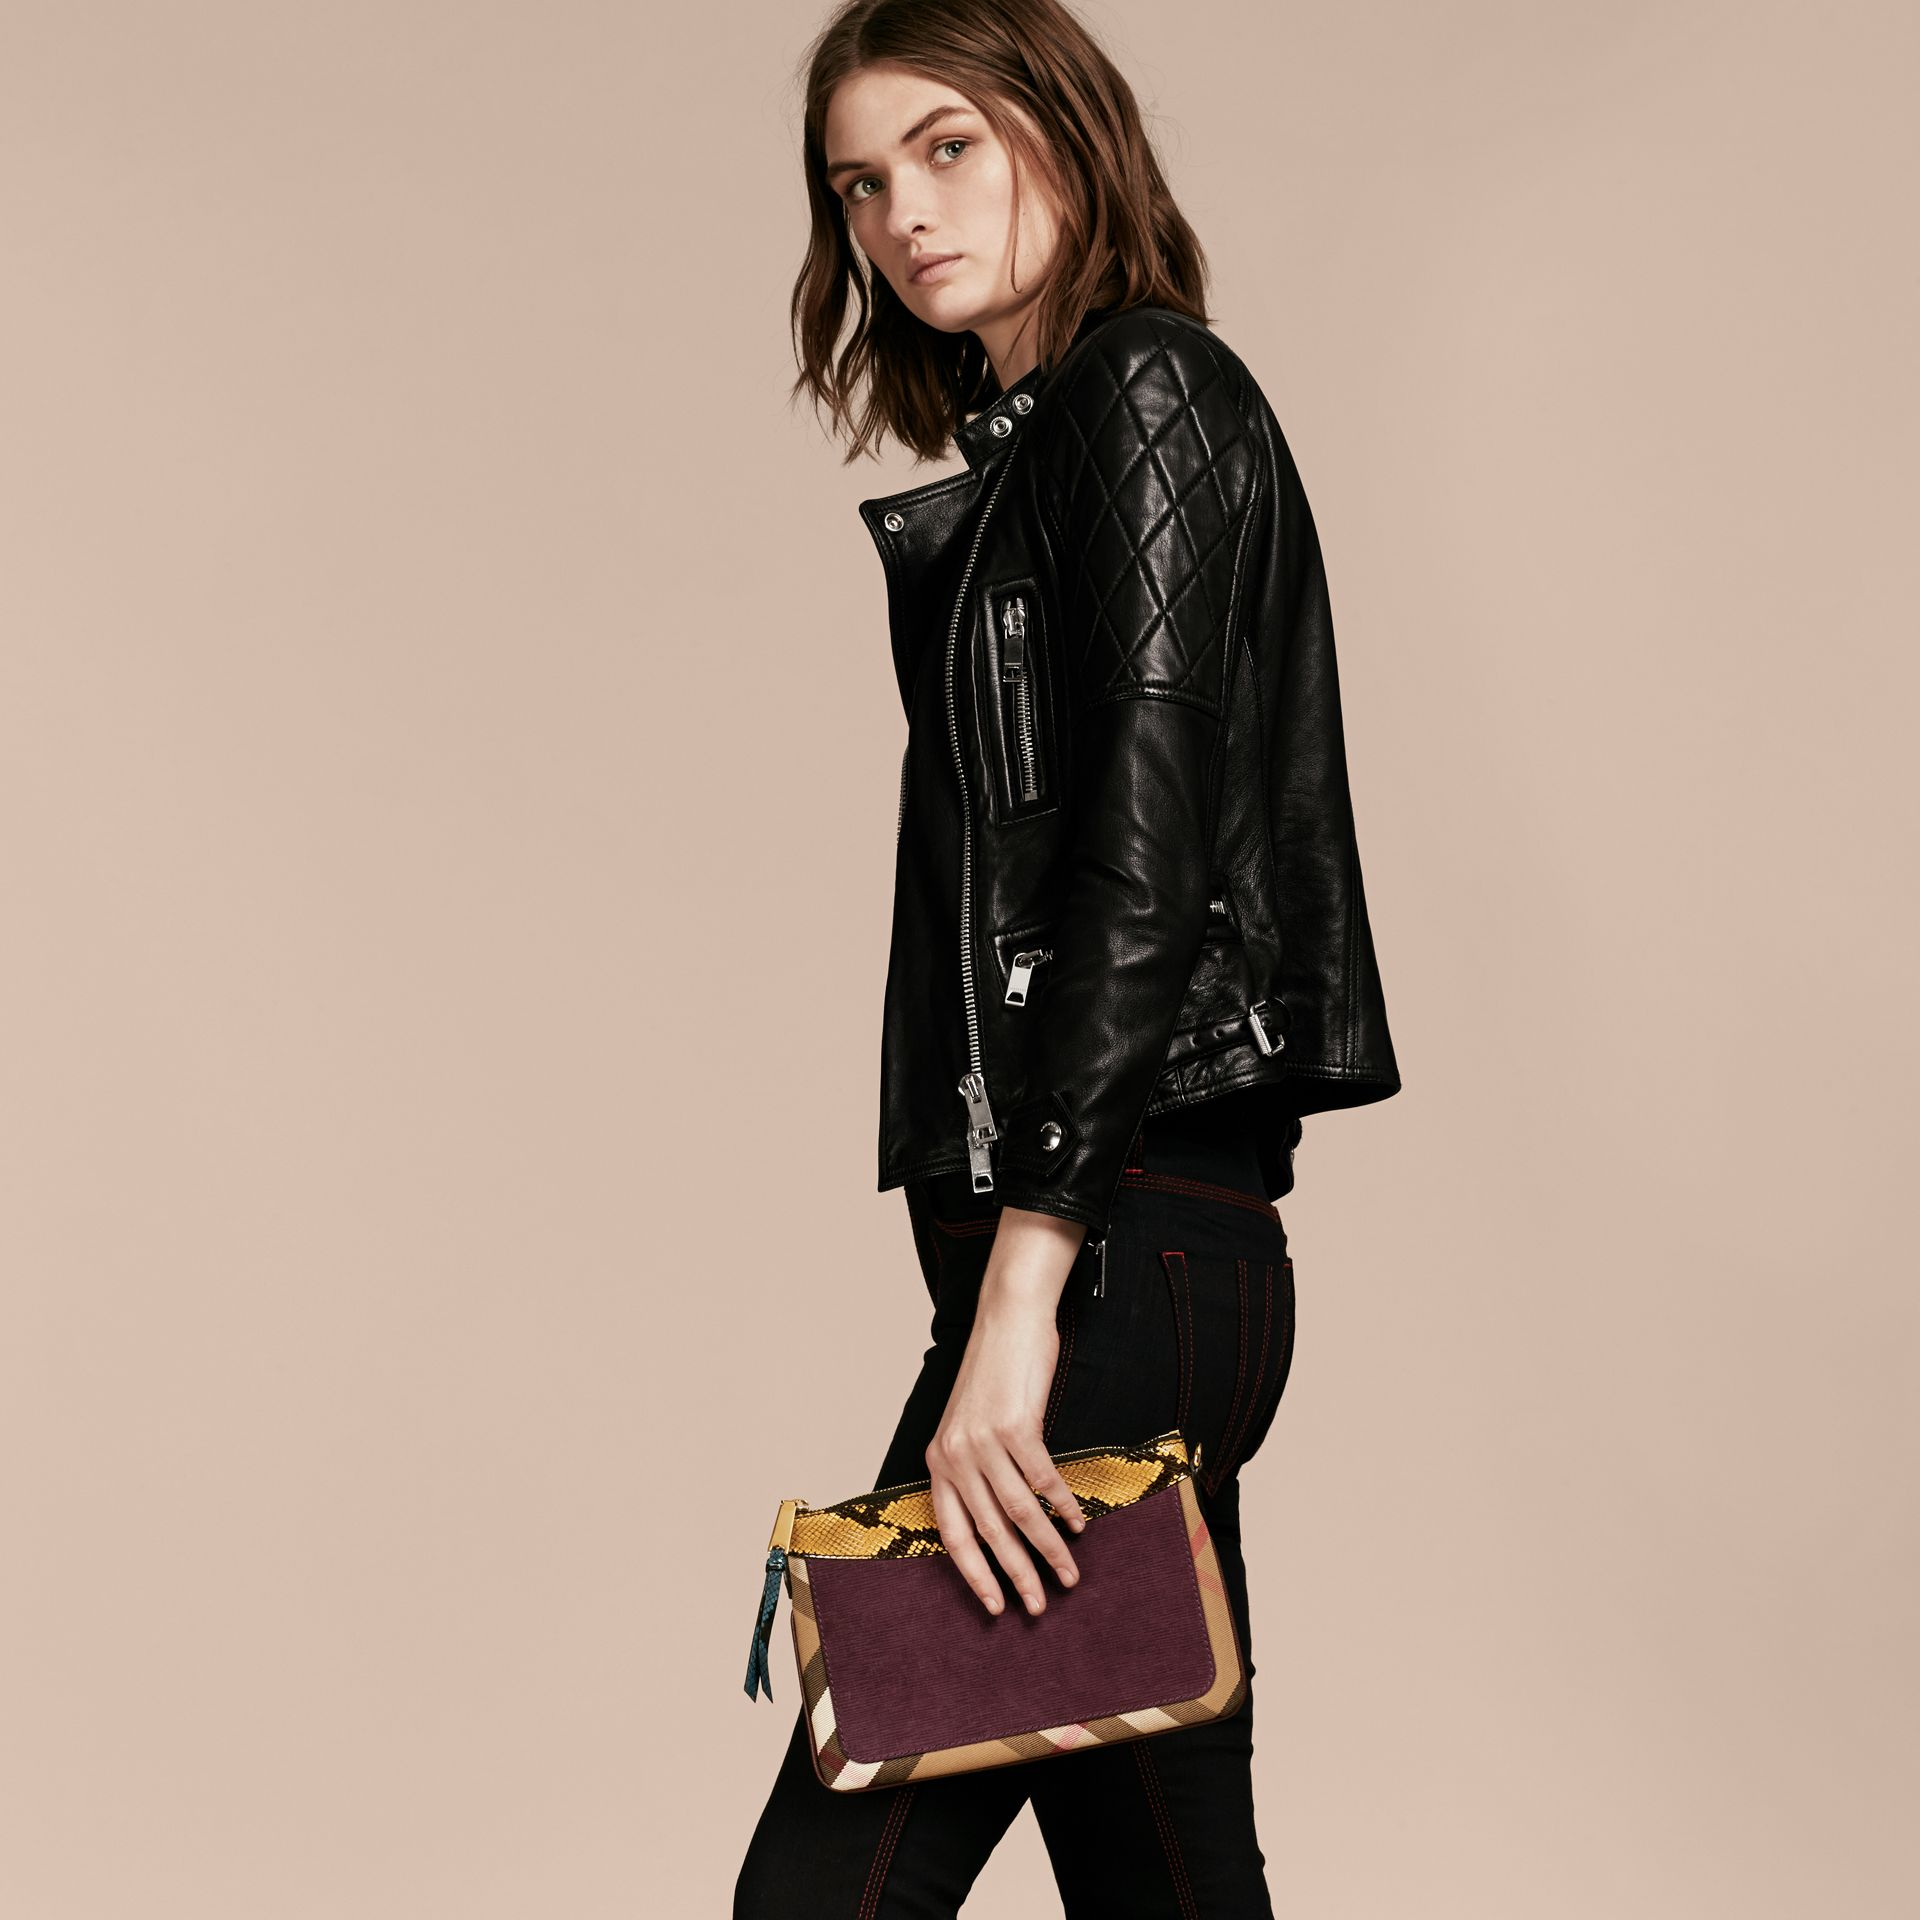 Elderberry Leather, House Check and Snakeskin Clutch Bag Elderberry - gallery image 4